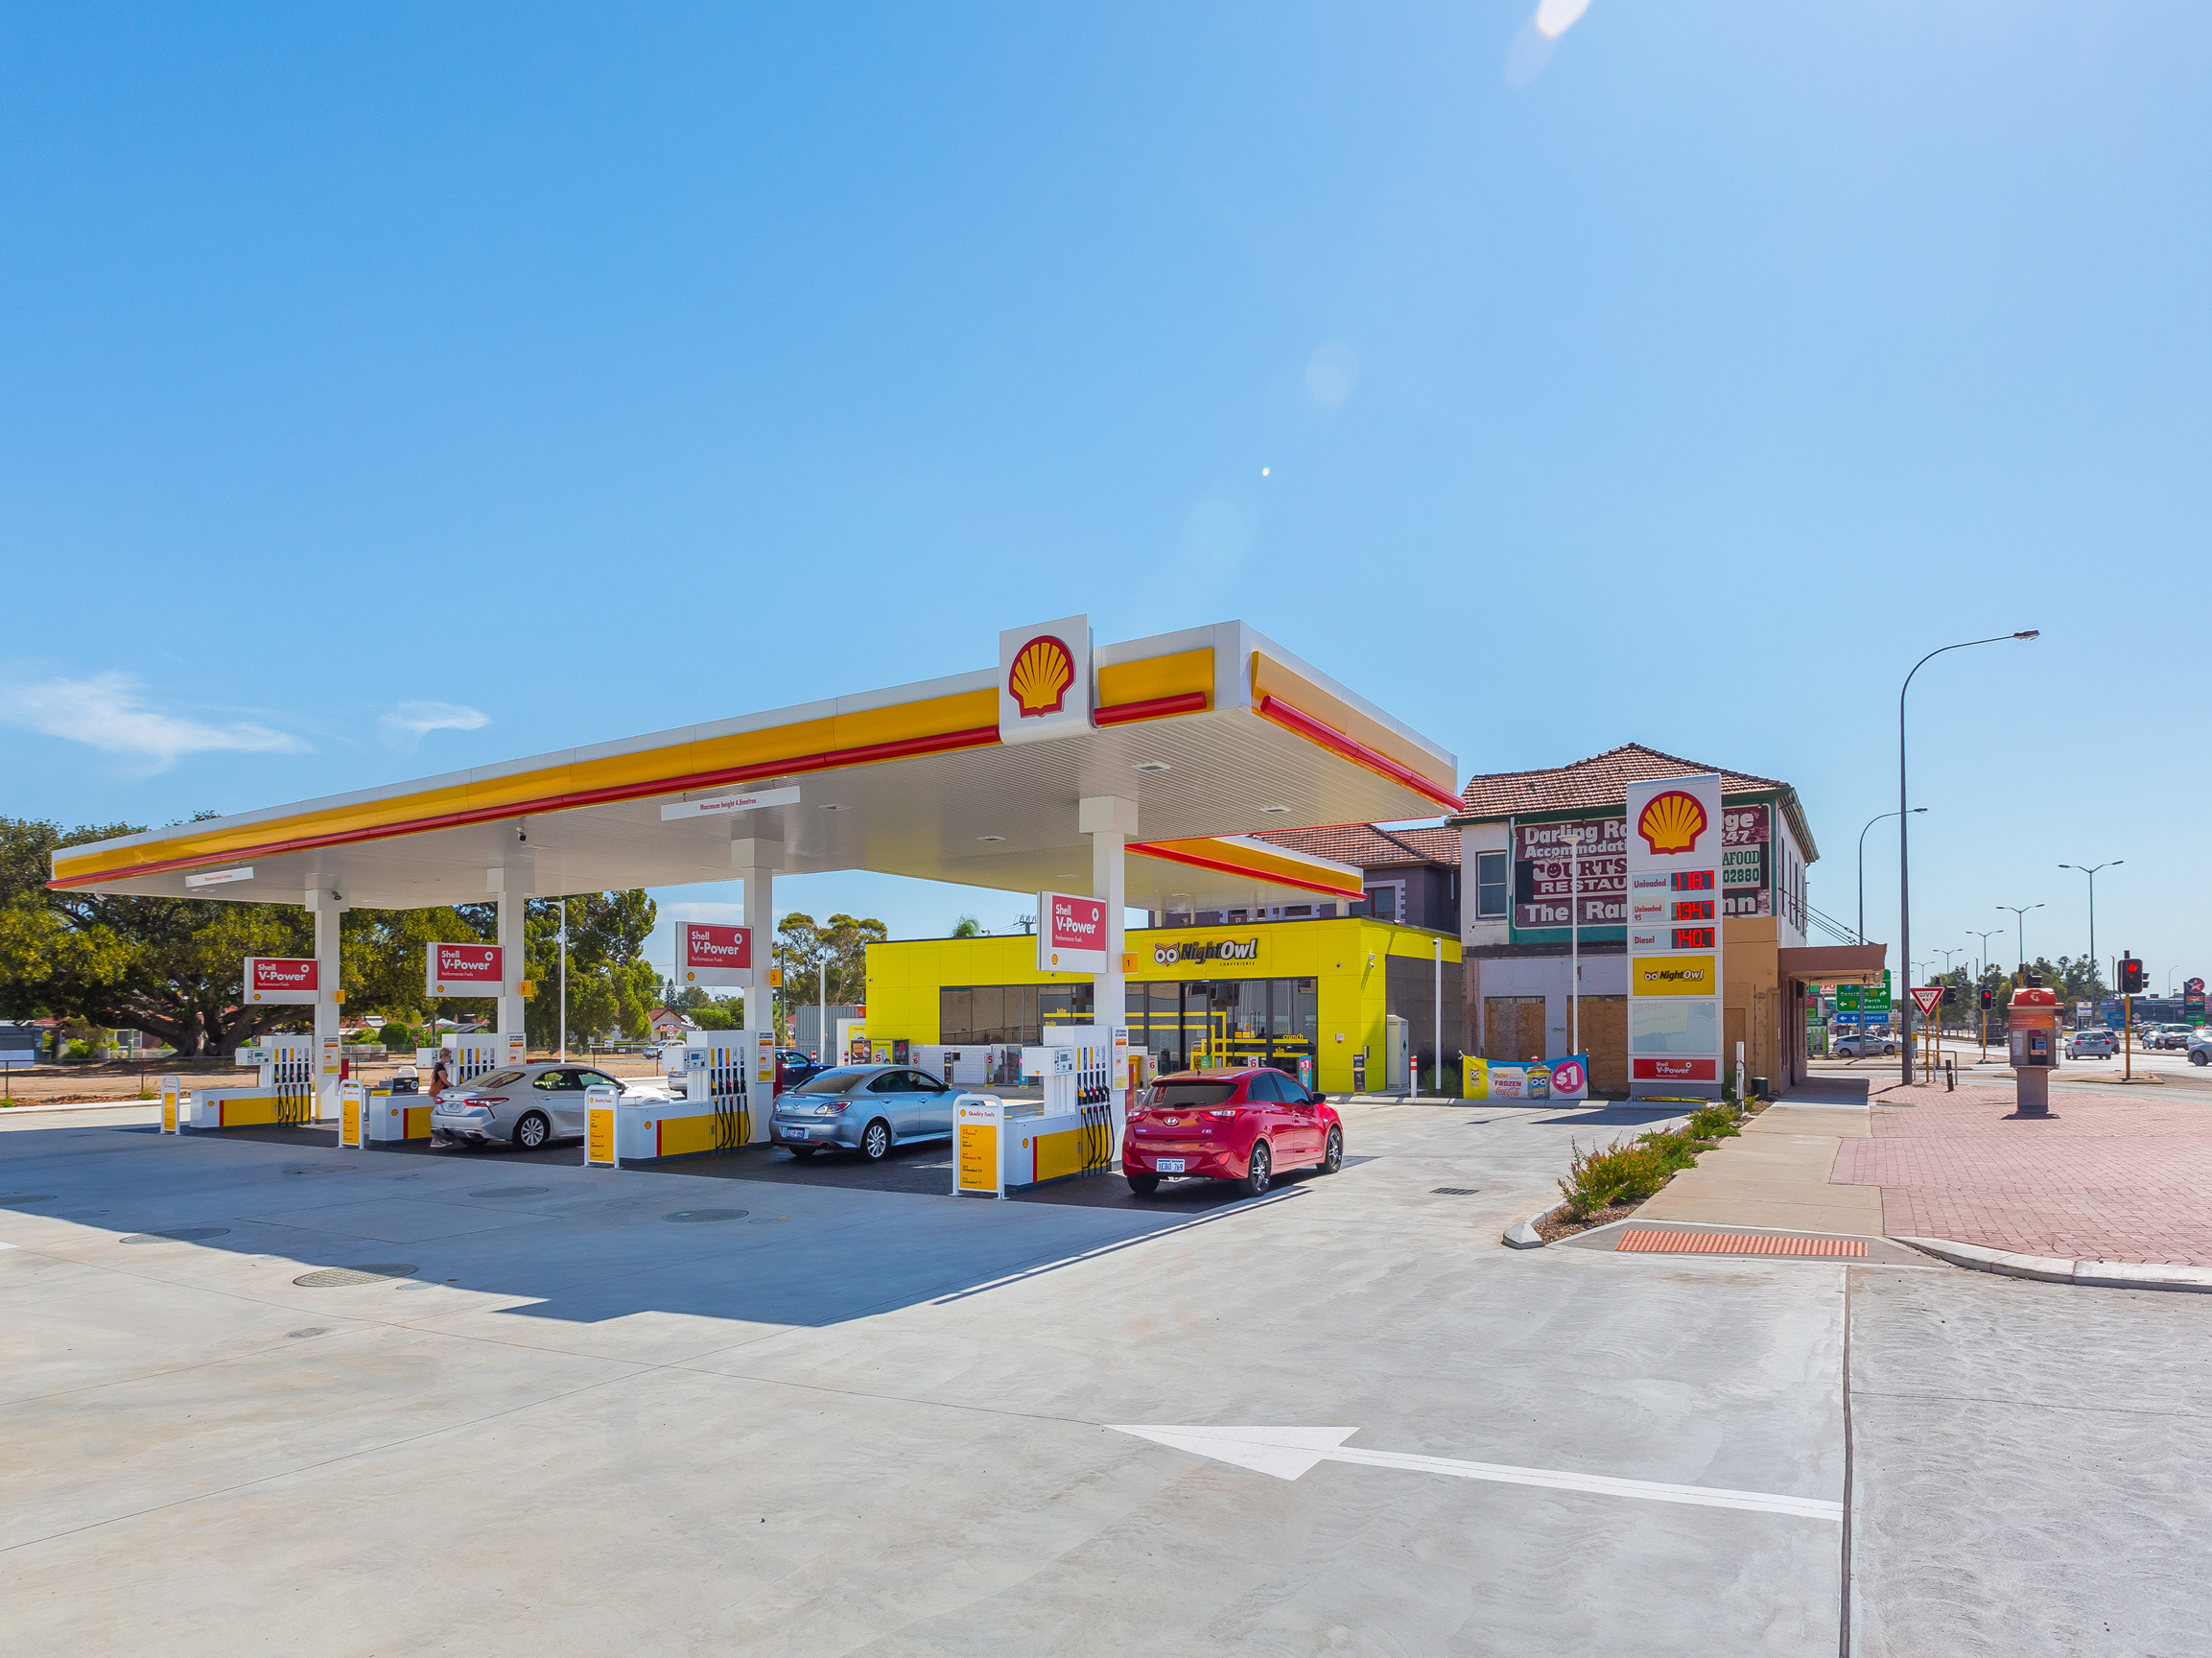 New 15 Year Lease To Viva Energy – Australia's Largest Fuel Retailer